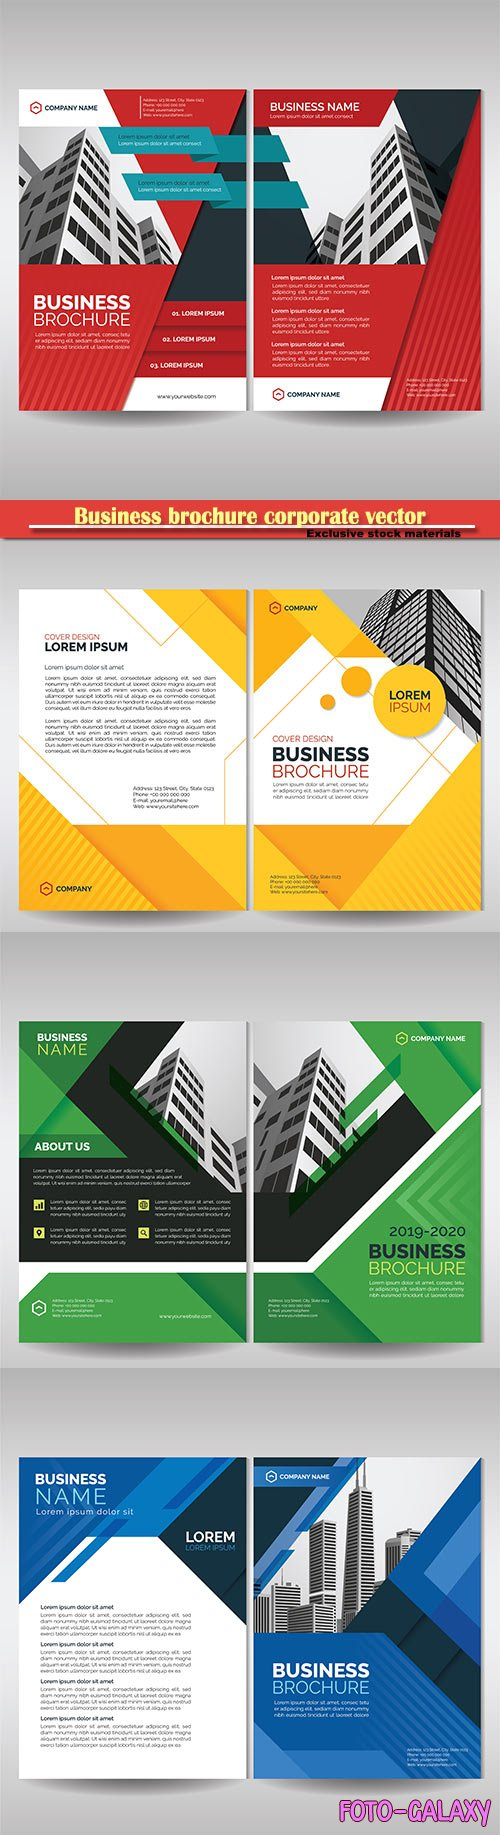 Business brochure corporate vector template, magazine flyer mockup # 37